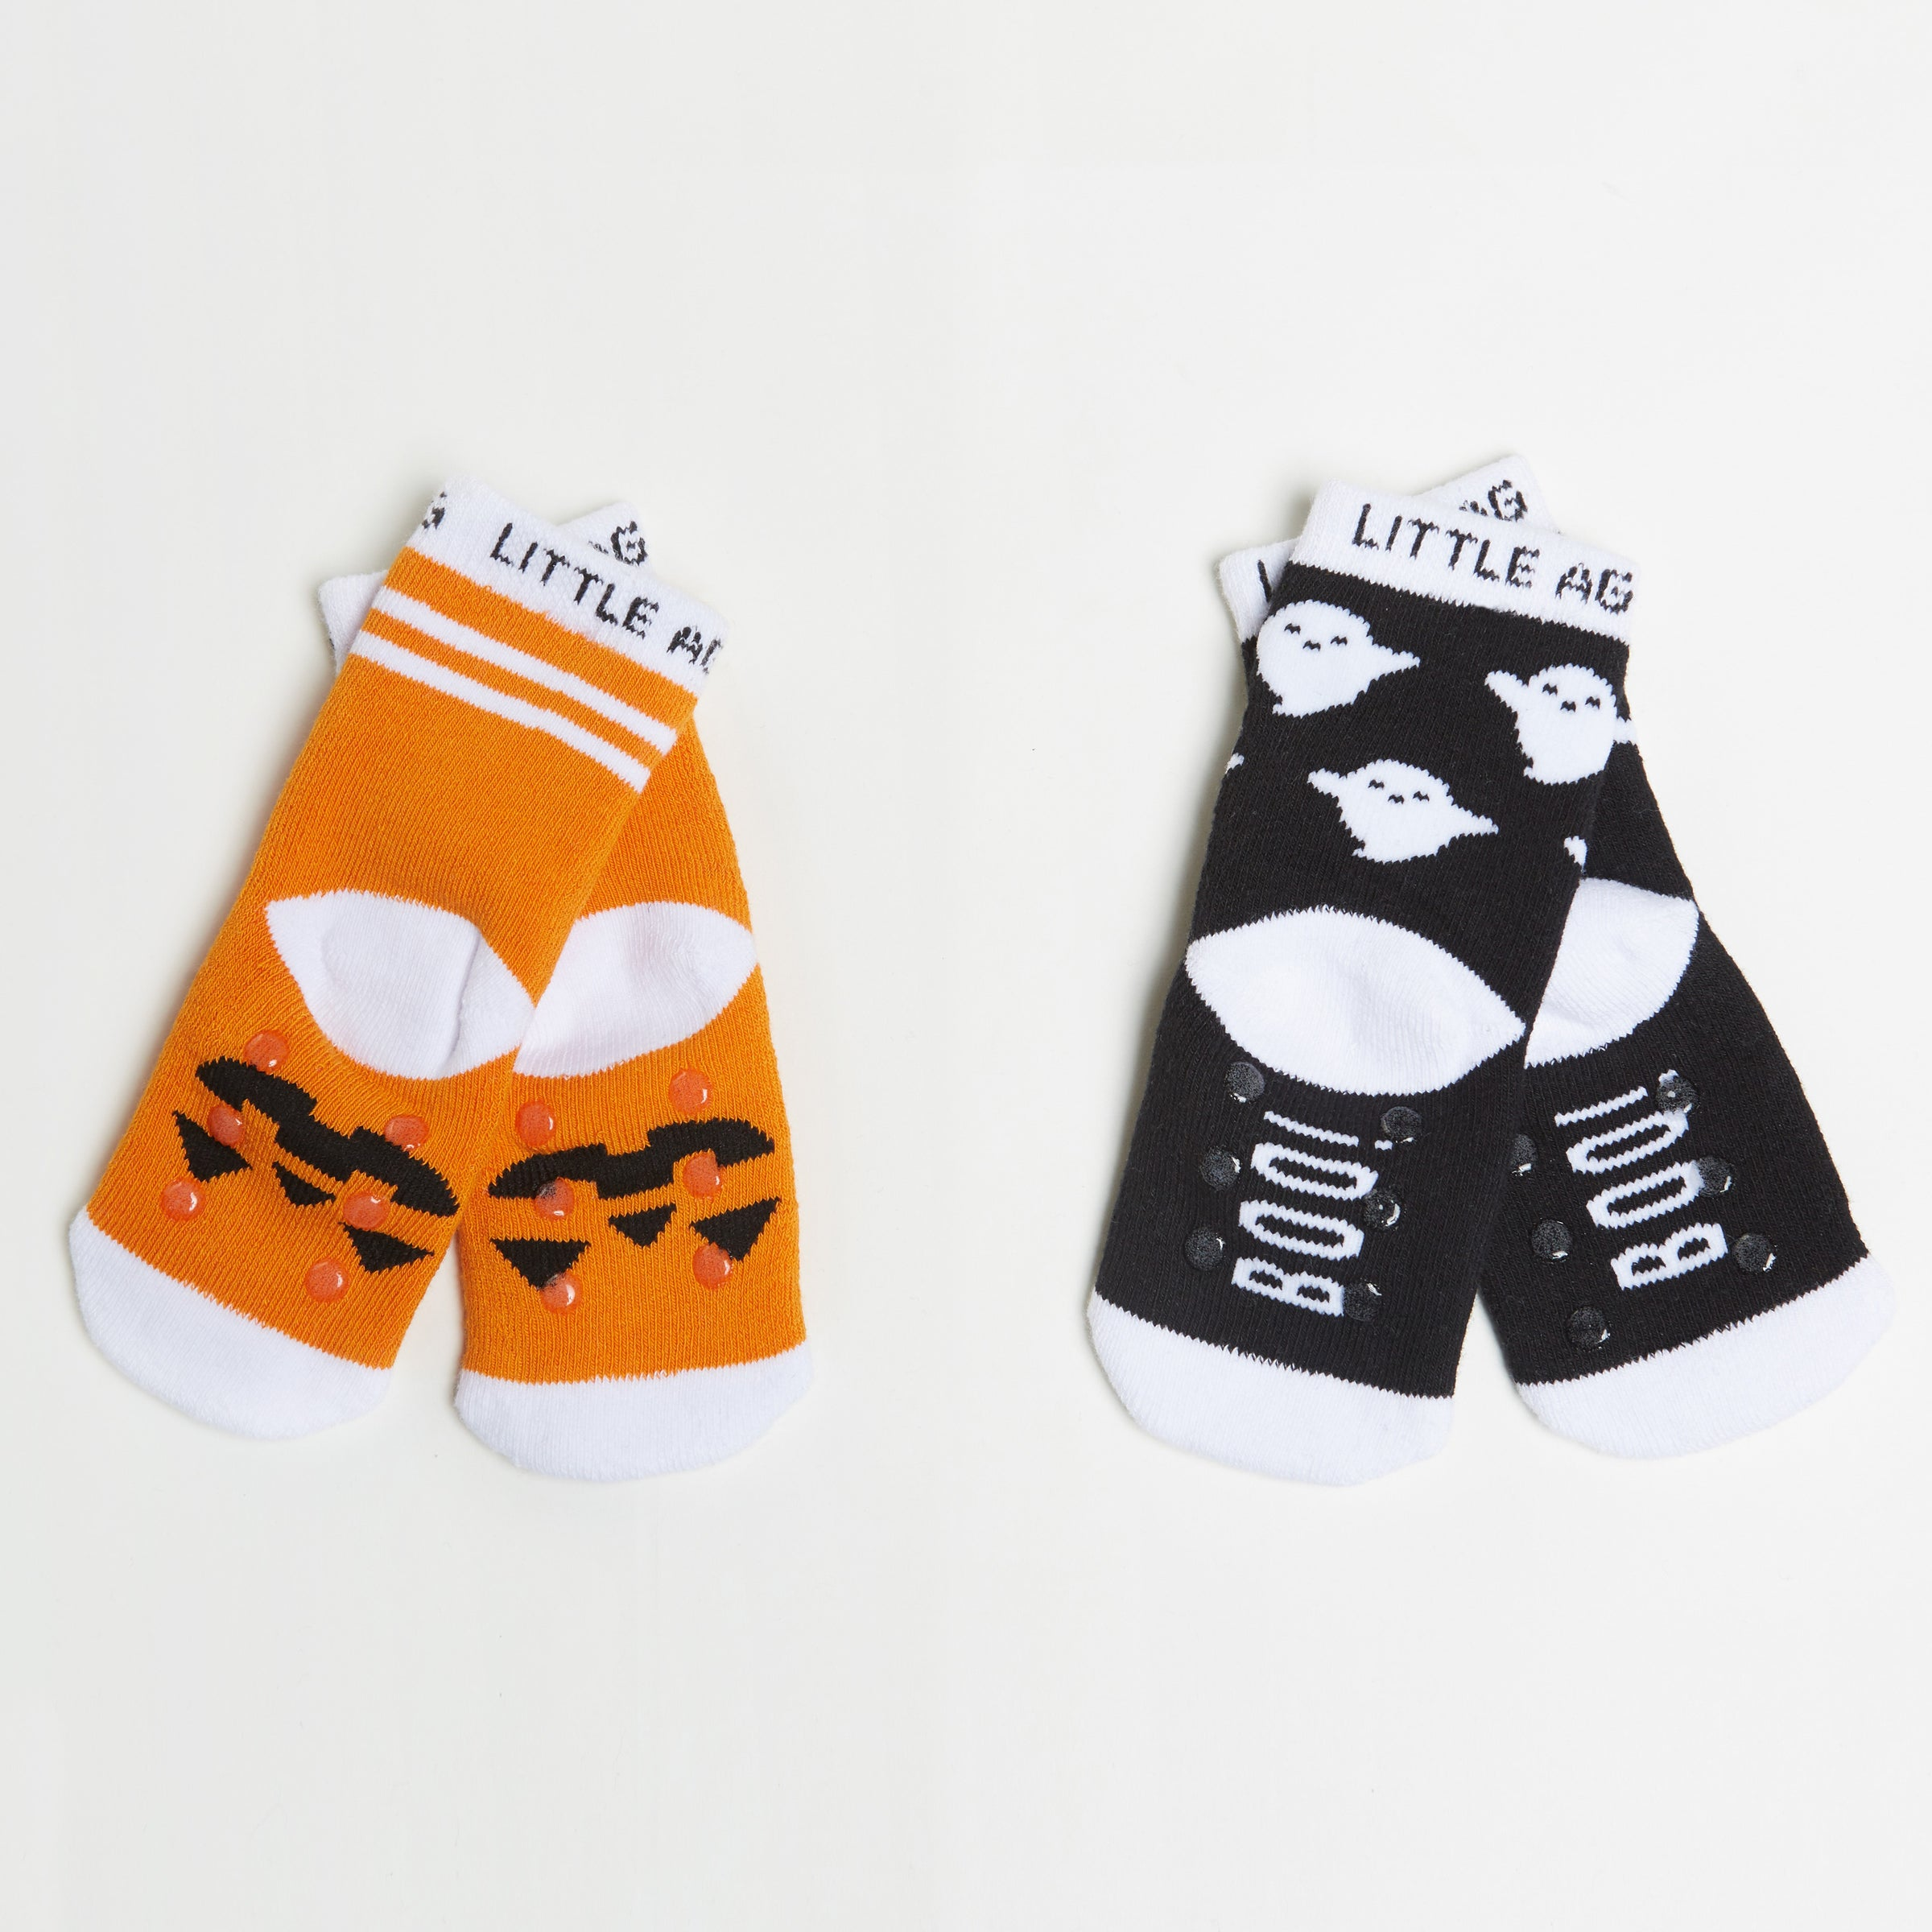 Pumpkin/Ghost Kids Halloween Socks - Two Pack bottom back view crossed